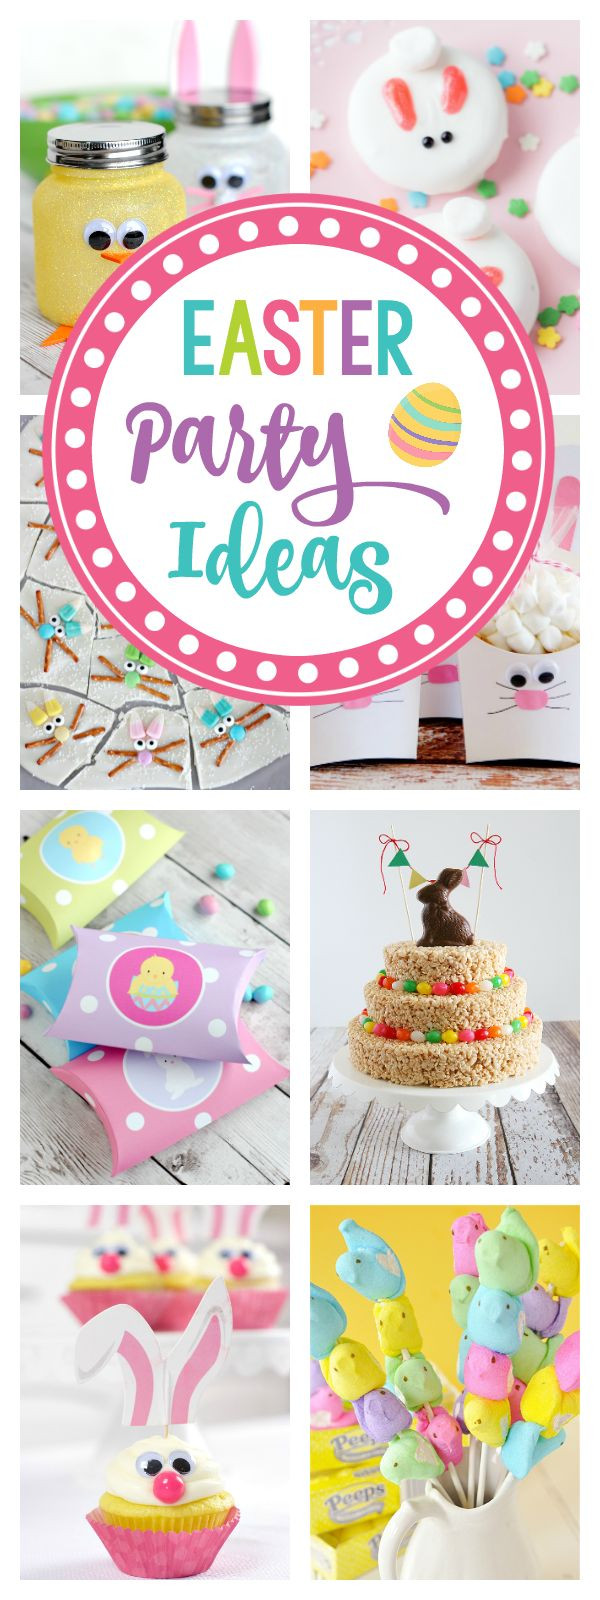 Easter Party Food Ideas Pinterest  25 best ideas about Easter Party on Pinterest